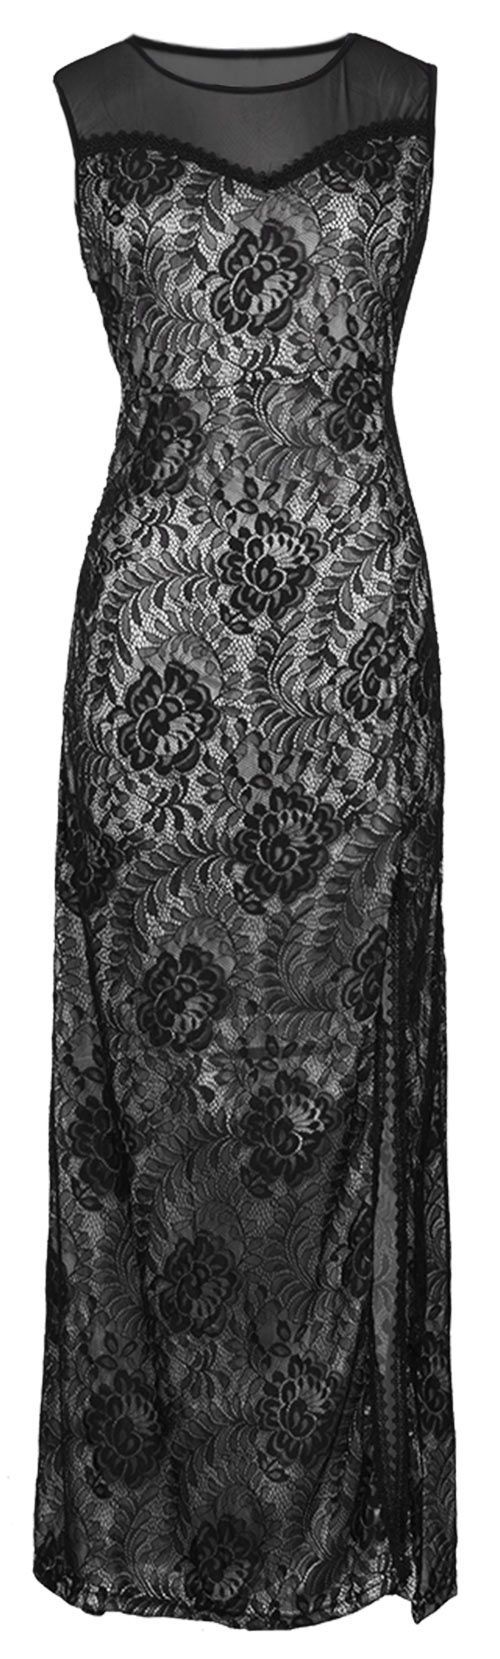 Only $23.99 with Free Shipping &Easy Returns! Stunning and comfortable all at the same time! This lace maxi dress is comfy perfections. You will love this super sweet maxi! Wear with a cardigan on chilly days, or without to show a little skin! Find your favorite at Cupshe.com !